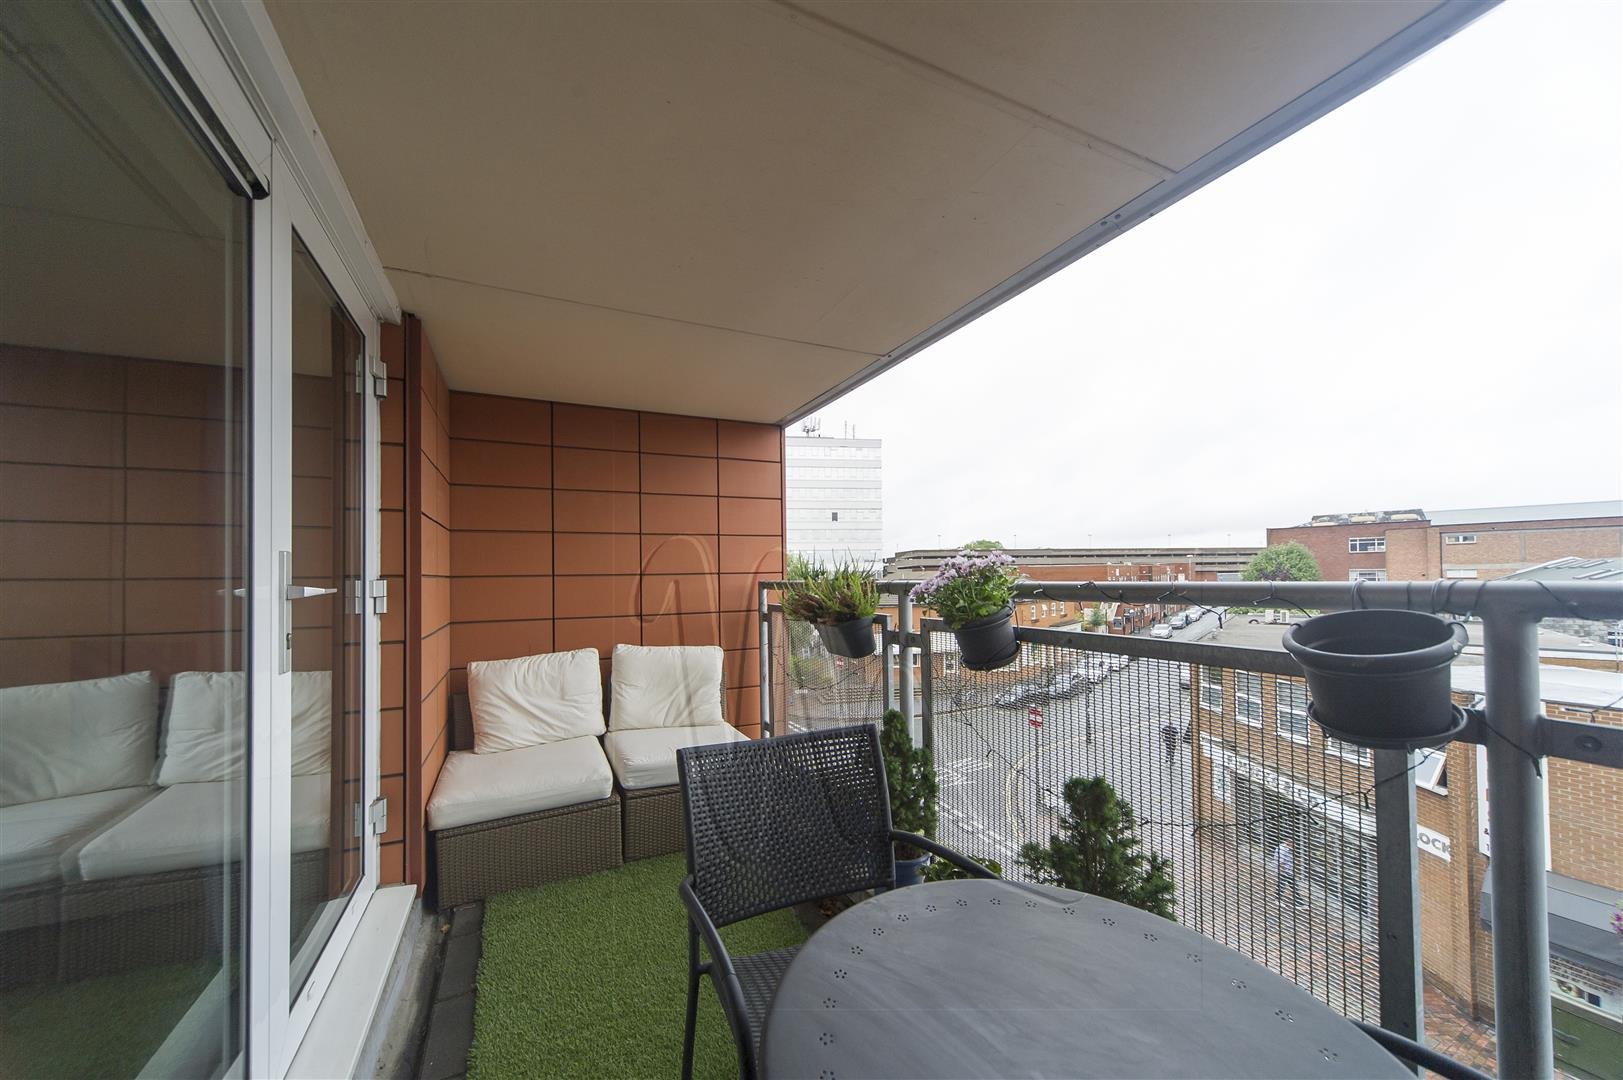 2 Bedrooms Apartment Flat for sale in Warstone Lane, Birmingham